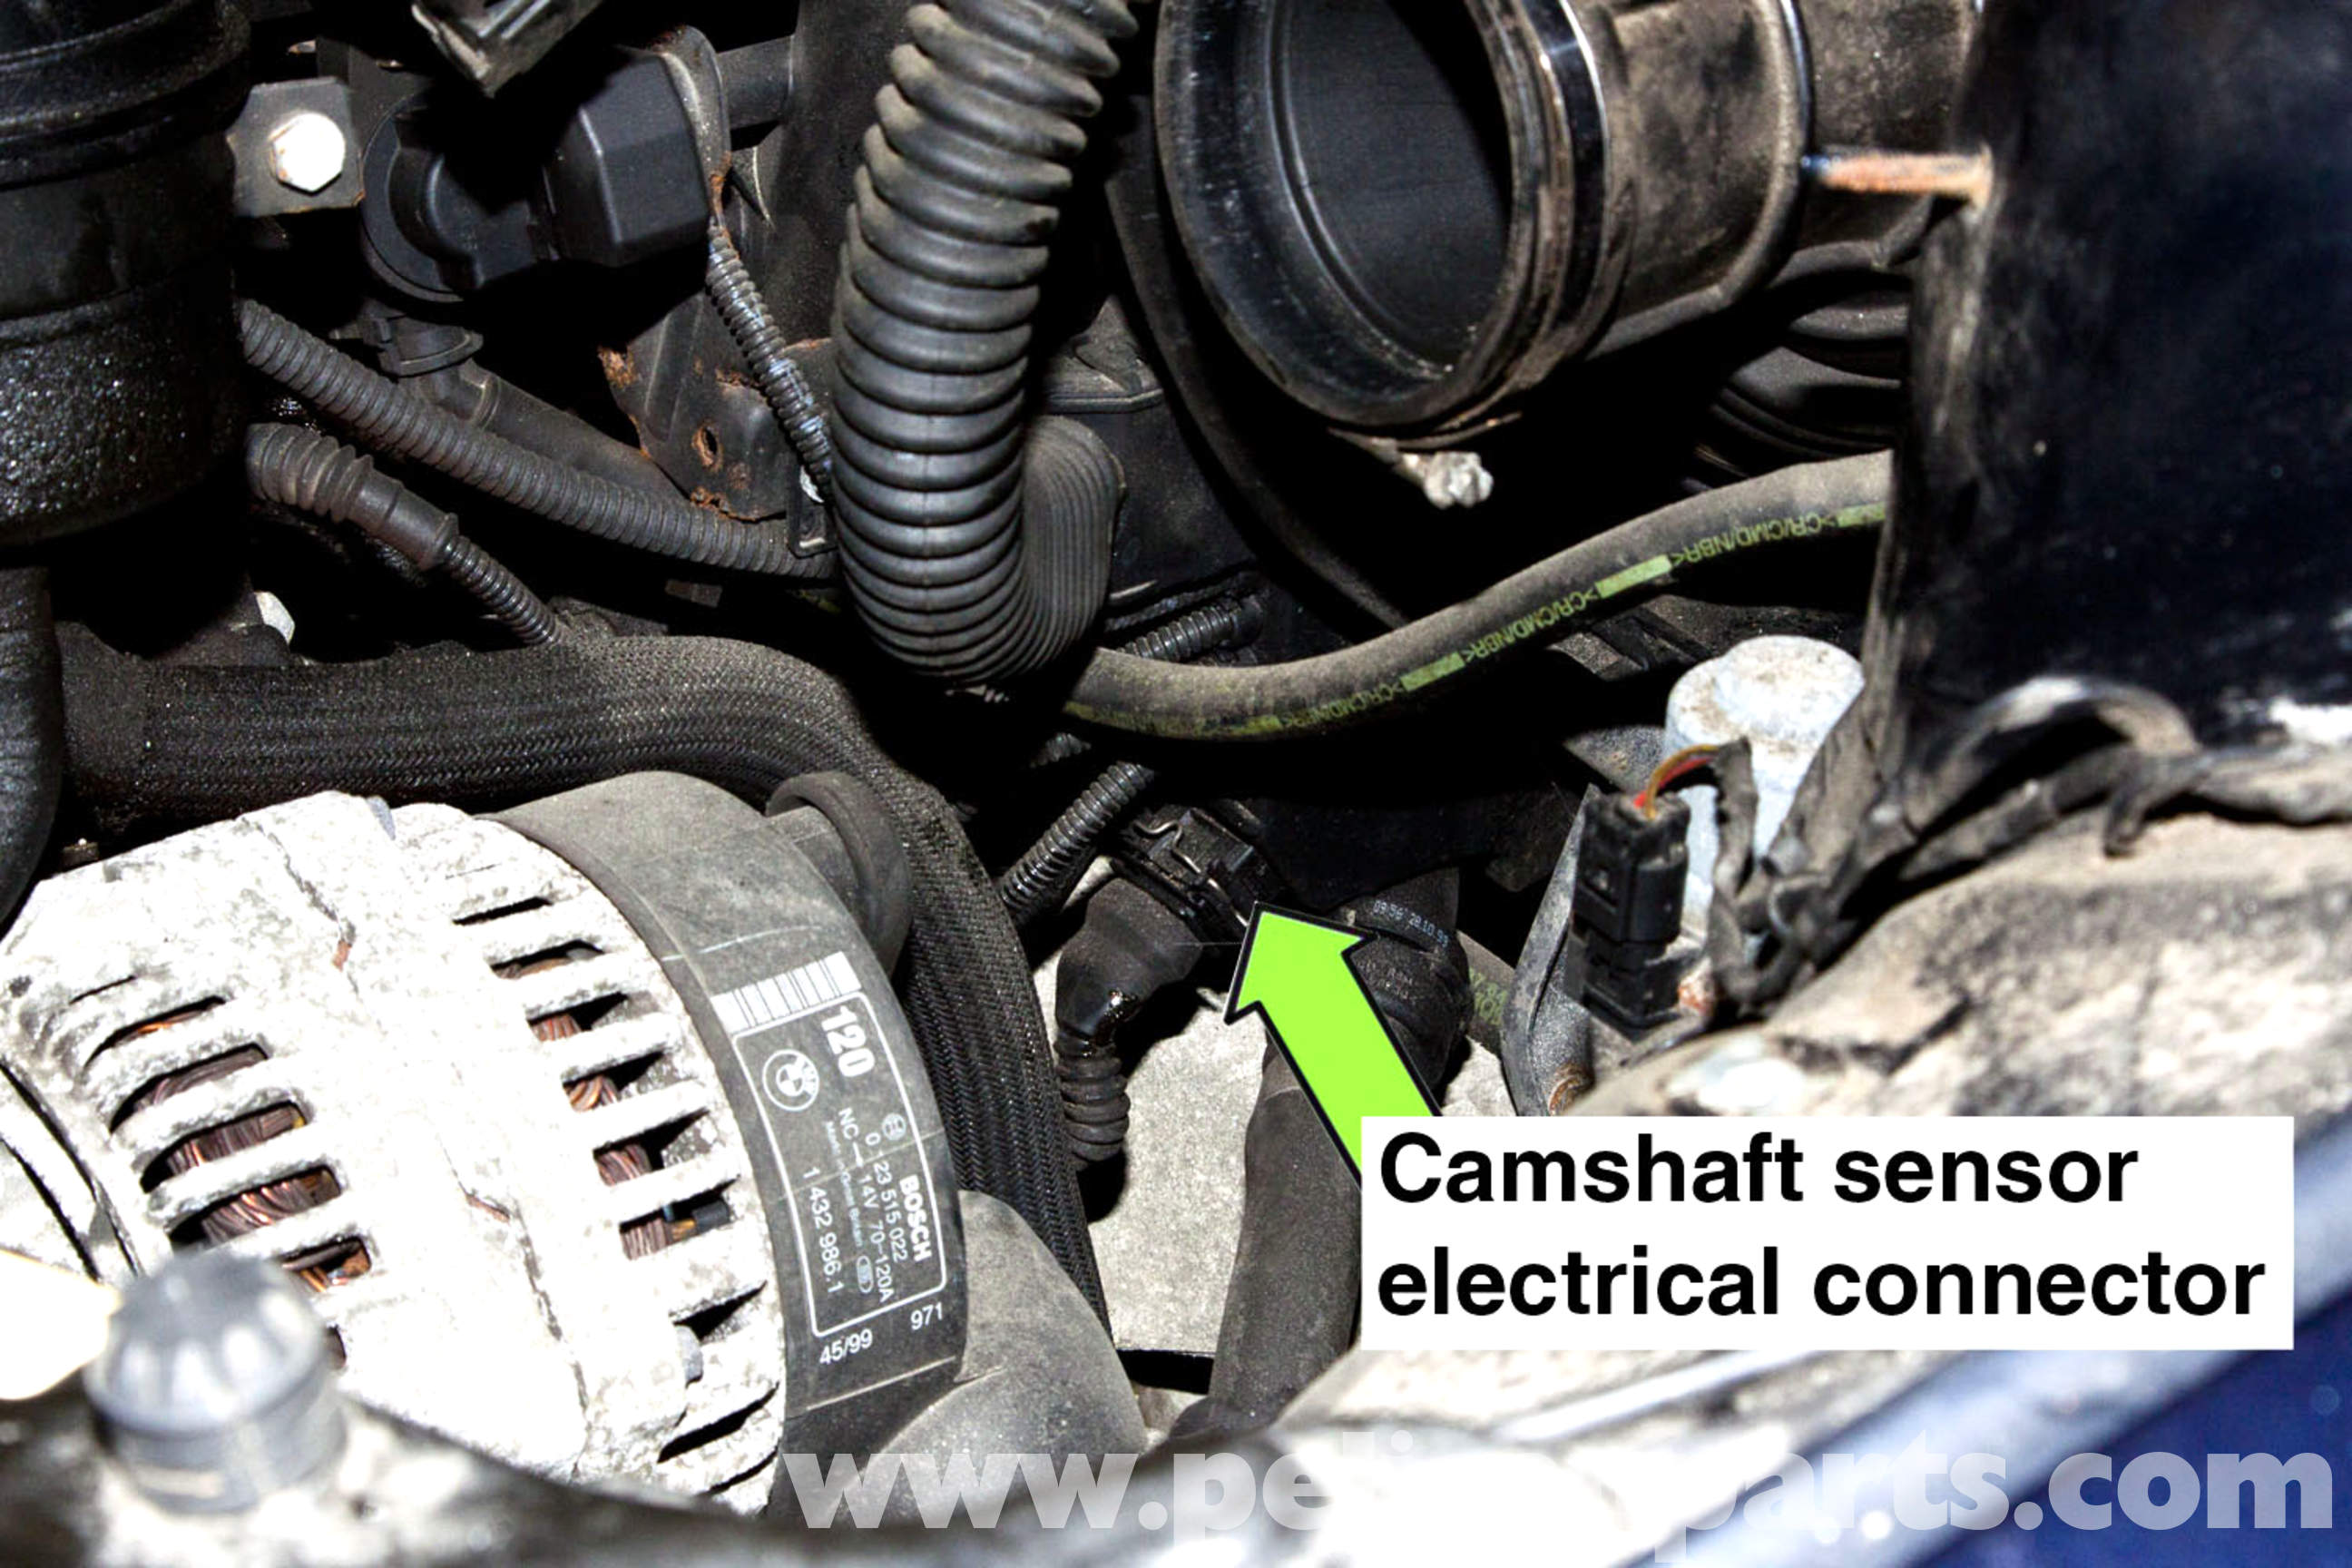 Bmw E46 Camshaft Sensor Replacement 325i 2001 2005 Wiring Diagram Large Image Extra Exhaust